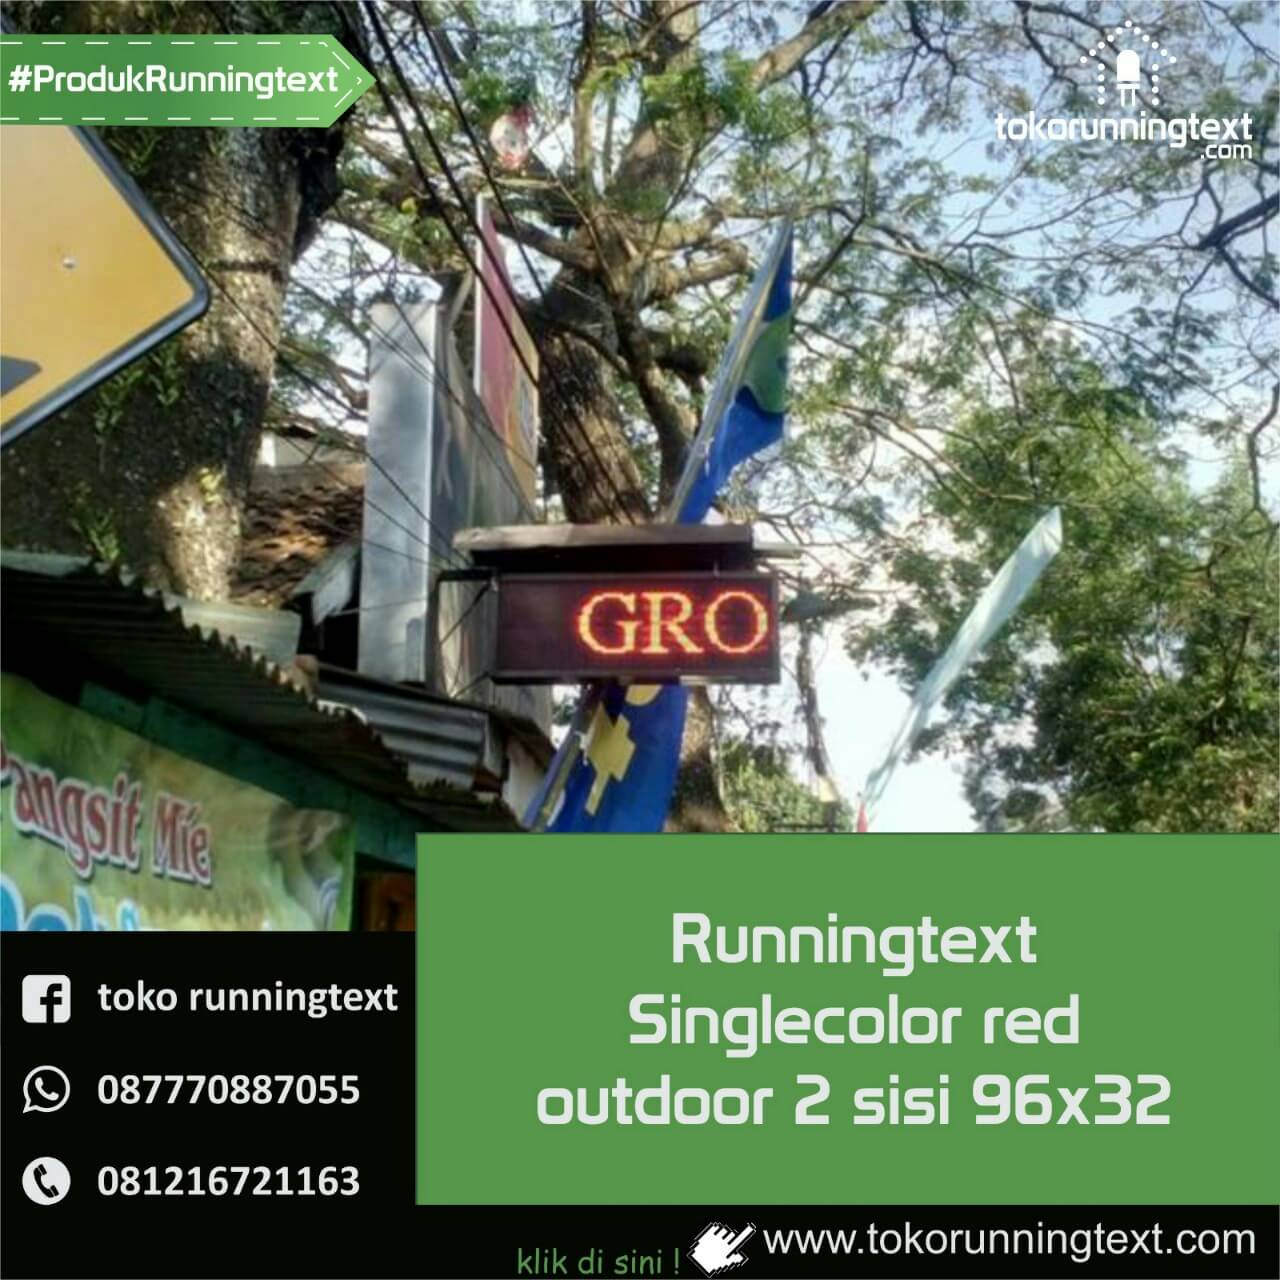 Runningtext singlecolor Red outdoor 2 sisi 96x32